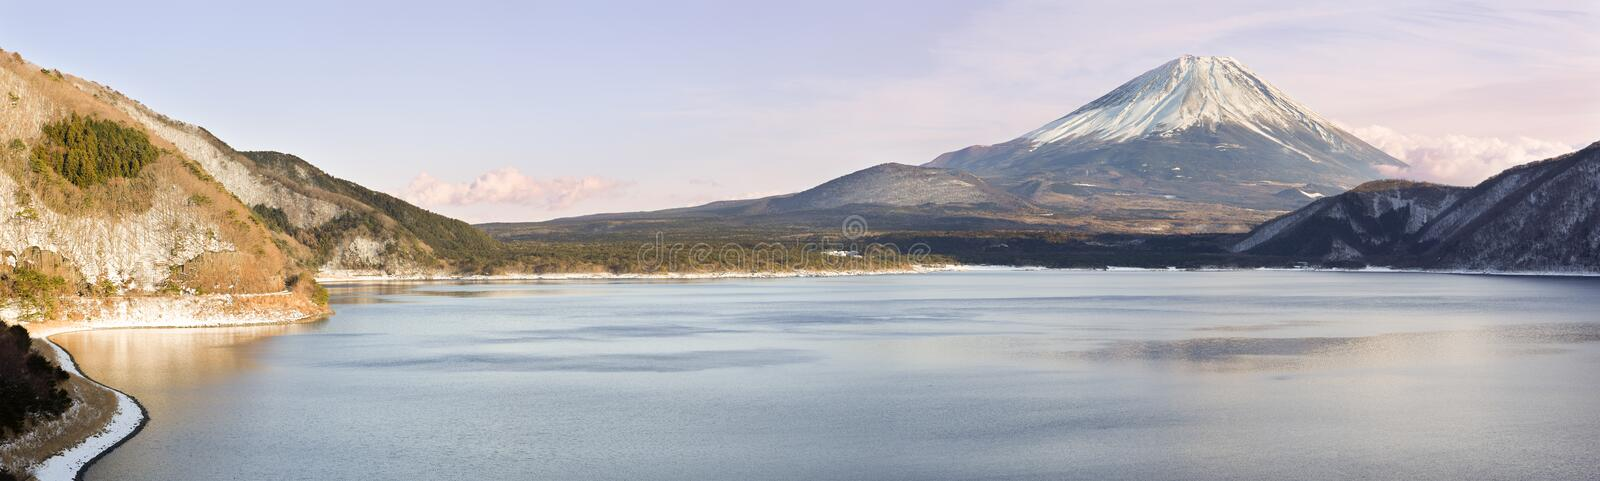 Mt Fuji (Fujisan) from Lake Motosuko - panorama landscape stock photos